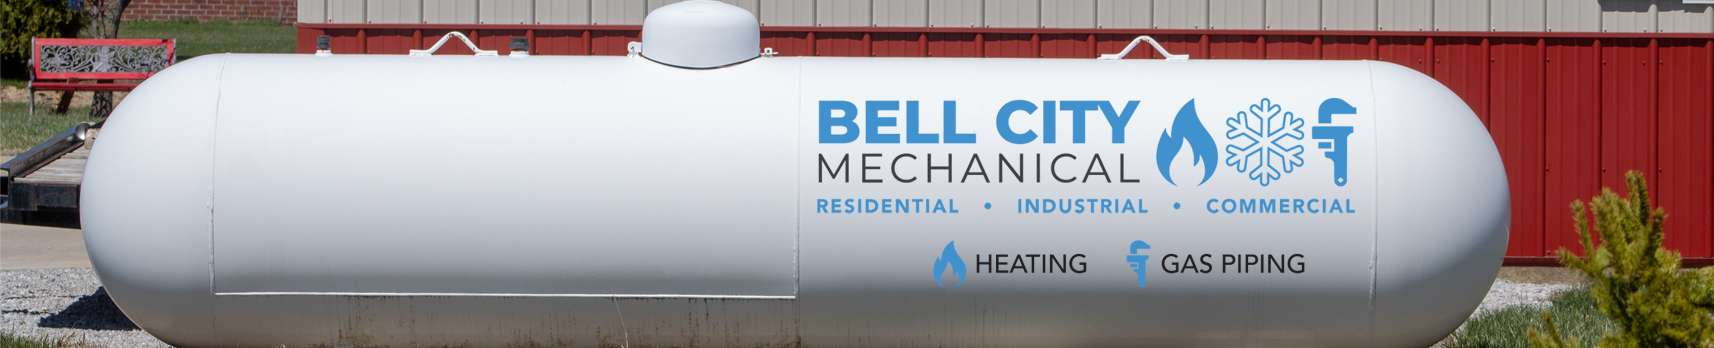 large propane tank with bell city logo